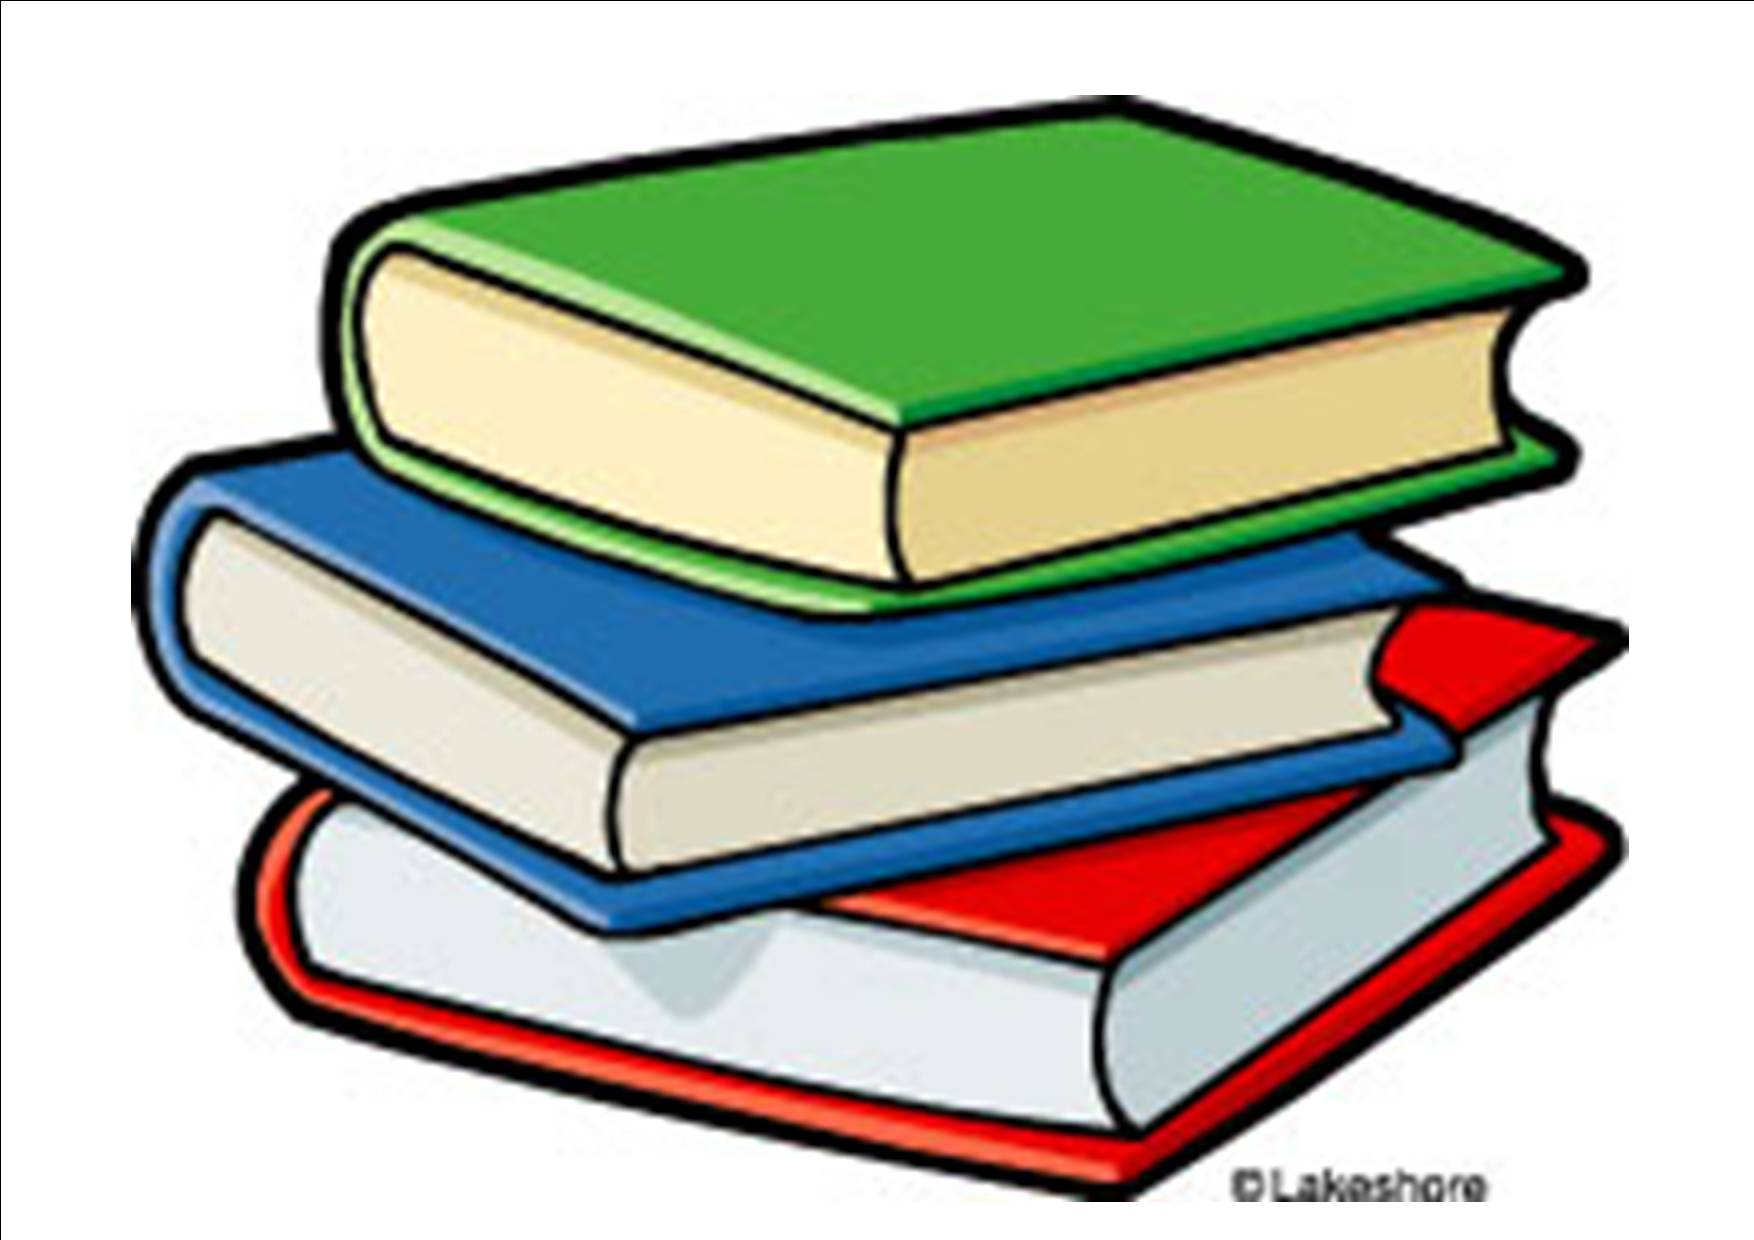 books clip art onwe bioinnovate co rh onwe bioinnovate co  classroom supplies clipart free